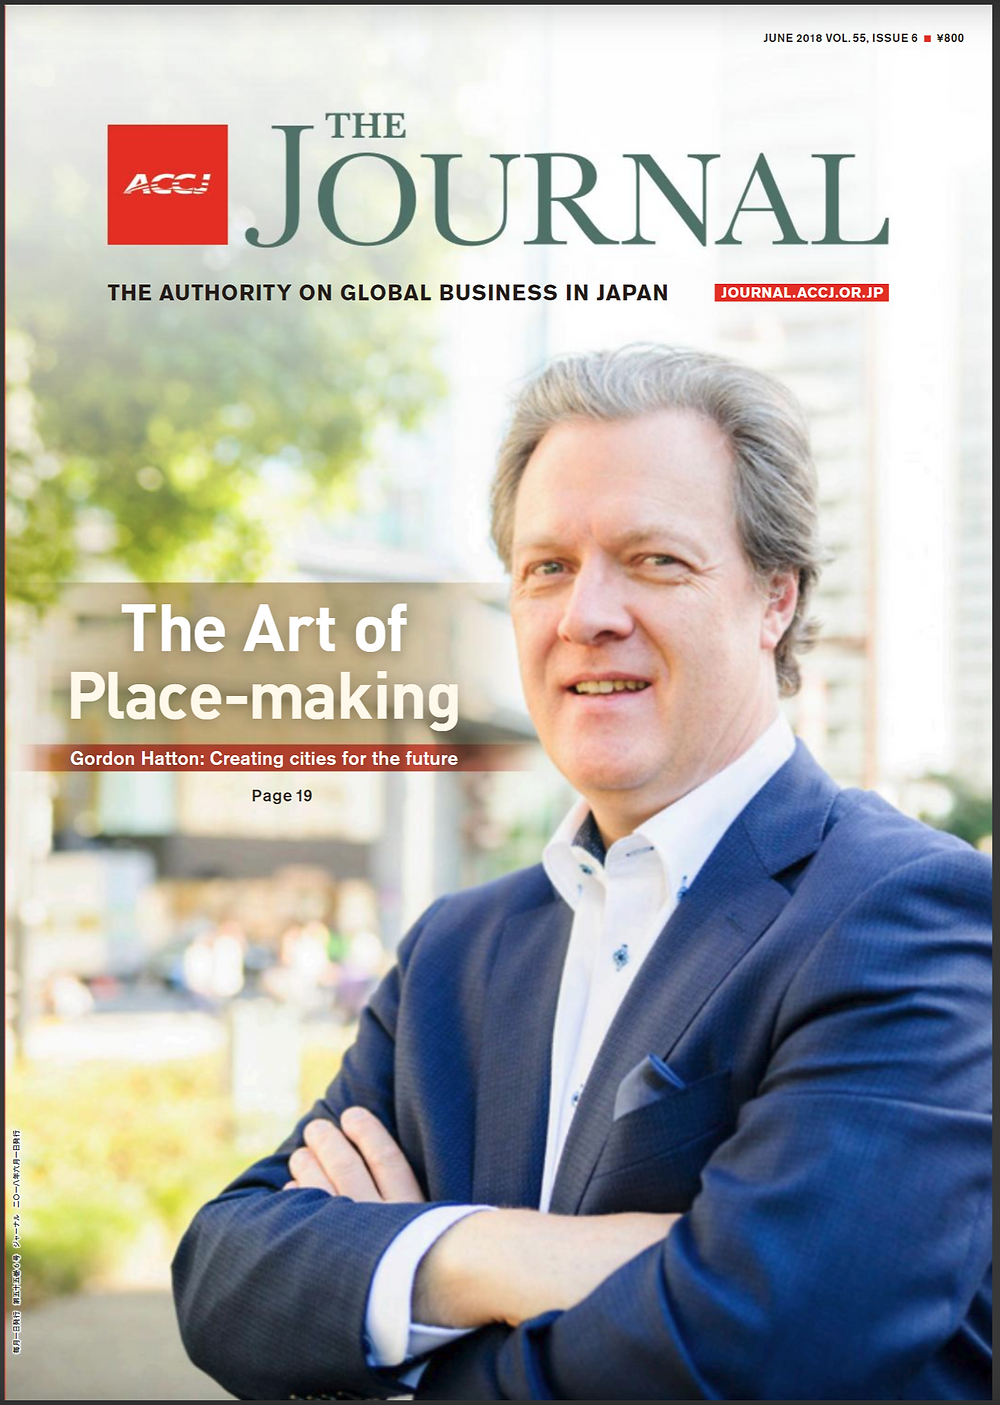 JUNE 2018 ACCJ LEADER  The Art of Place-making Creating cities for the future  By Gordon Hatton  As an architect and an urban real estate developer, how to create city spaces with a unique spirit of place is something I spend considerable time thinking about.  In an age when we have a propensity for classifying, we speak of gateway cities, Tier-2 livable cities, smart cities, sustainable cities, innovation hubs, or centers of media concentration, and we look to studies such as the Global Power City Index to understand, define, and rank their importance. While these evaluations do not specifically consider blockbuster events, such as the Tokyo 2020 Olympic and Paralympic Games, these milestones can signal the repositioning of a city's image.  https://journal.accj.or.jp/the-art-of-place-making/   The ACCJ - 在日米国商工会議所  http://www.accj.or.jp